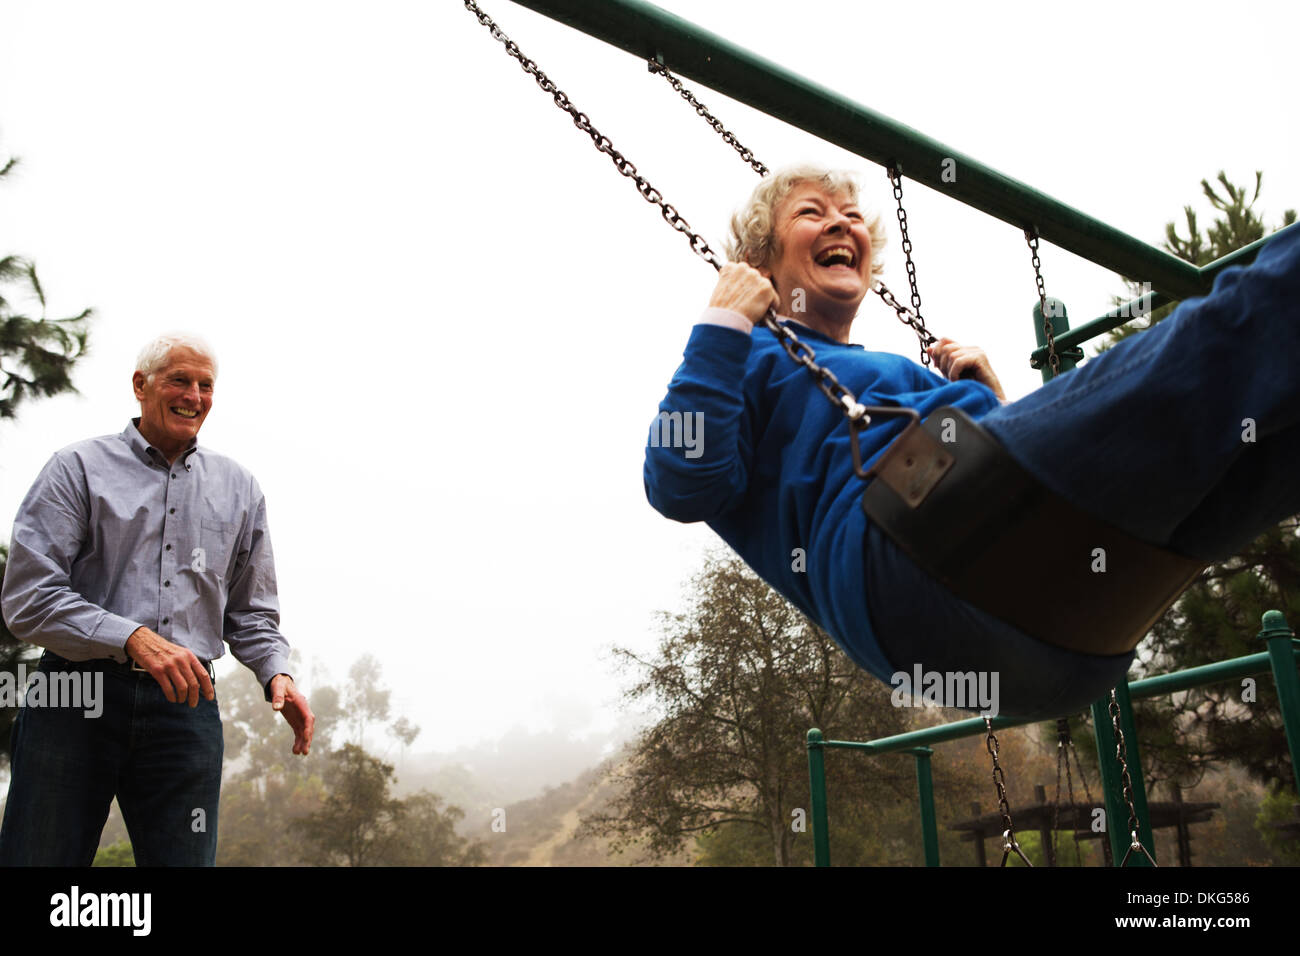 Husband pushing wife on swing - Stock Image